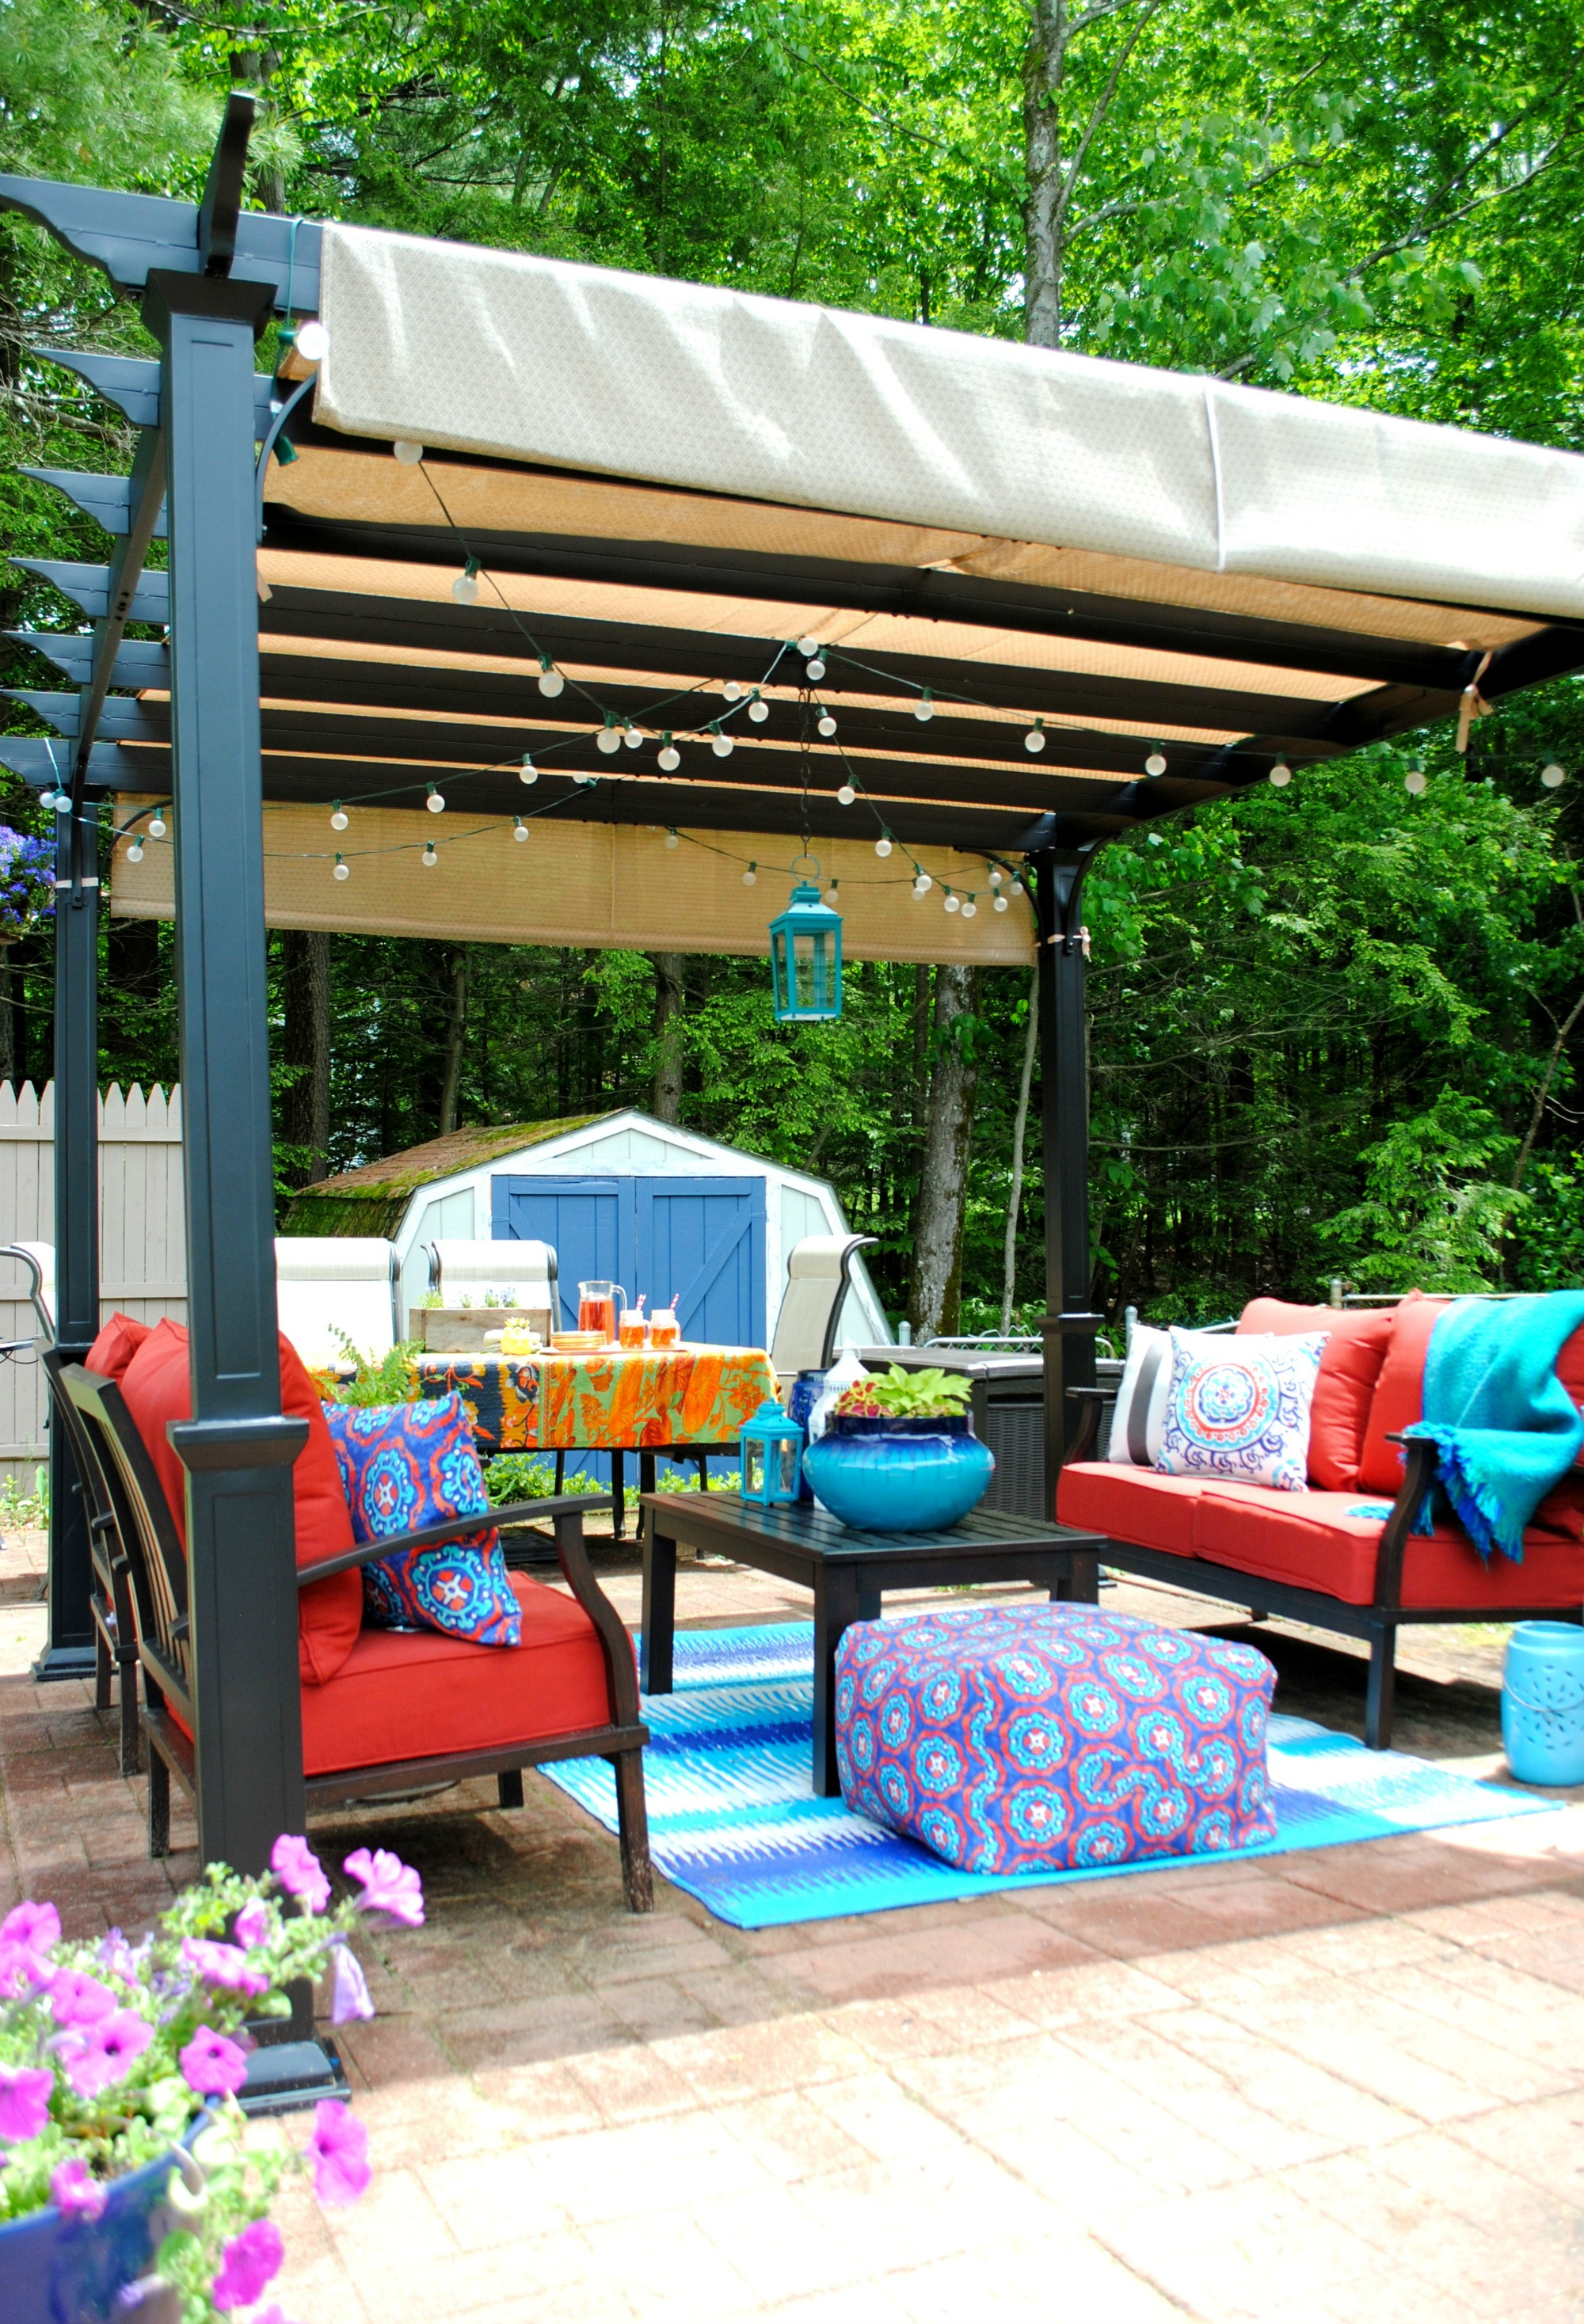 Helpful budget-friendly ideas to create an outdoor